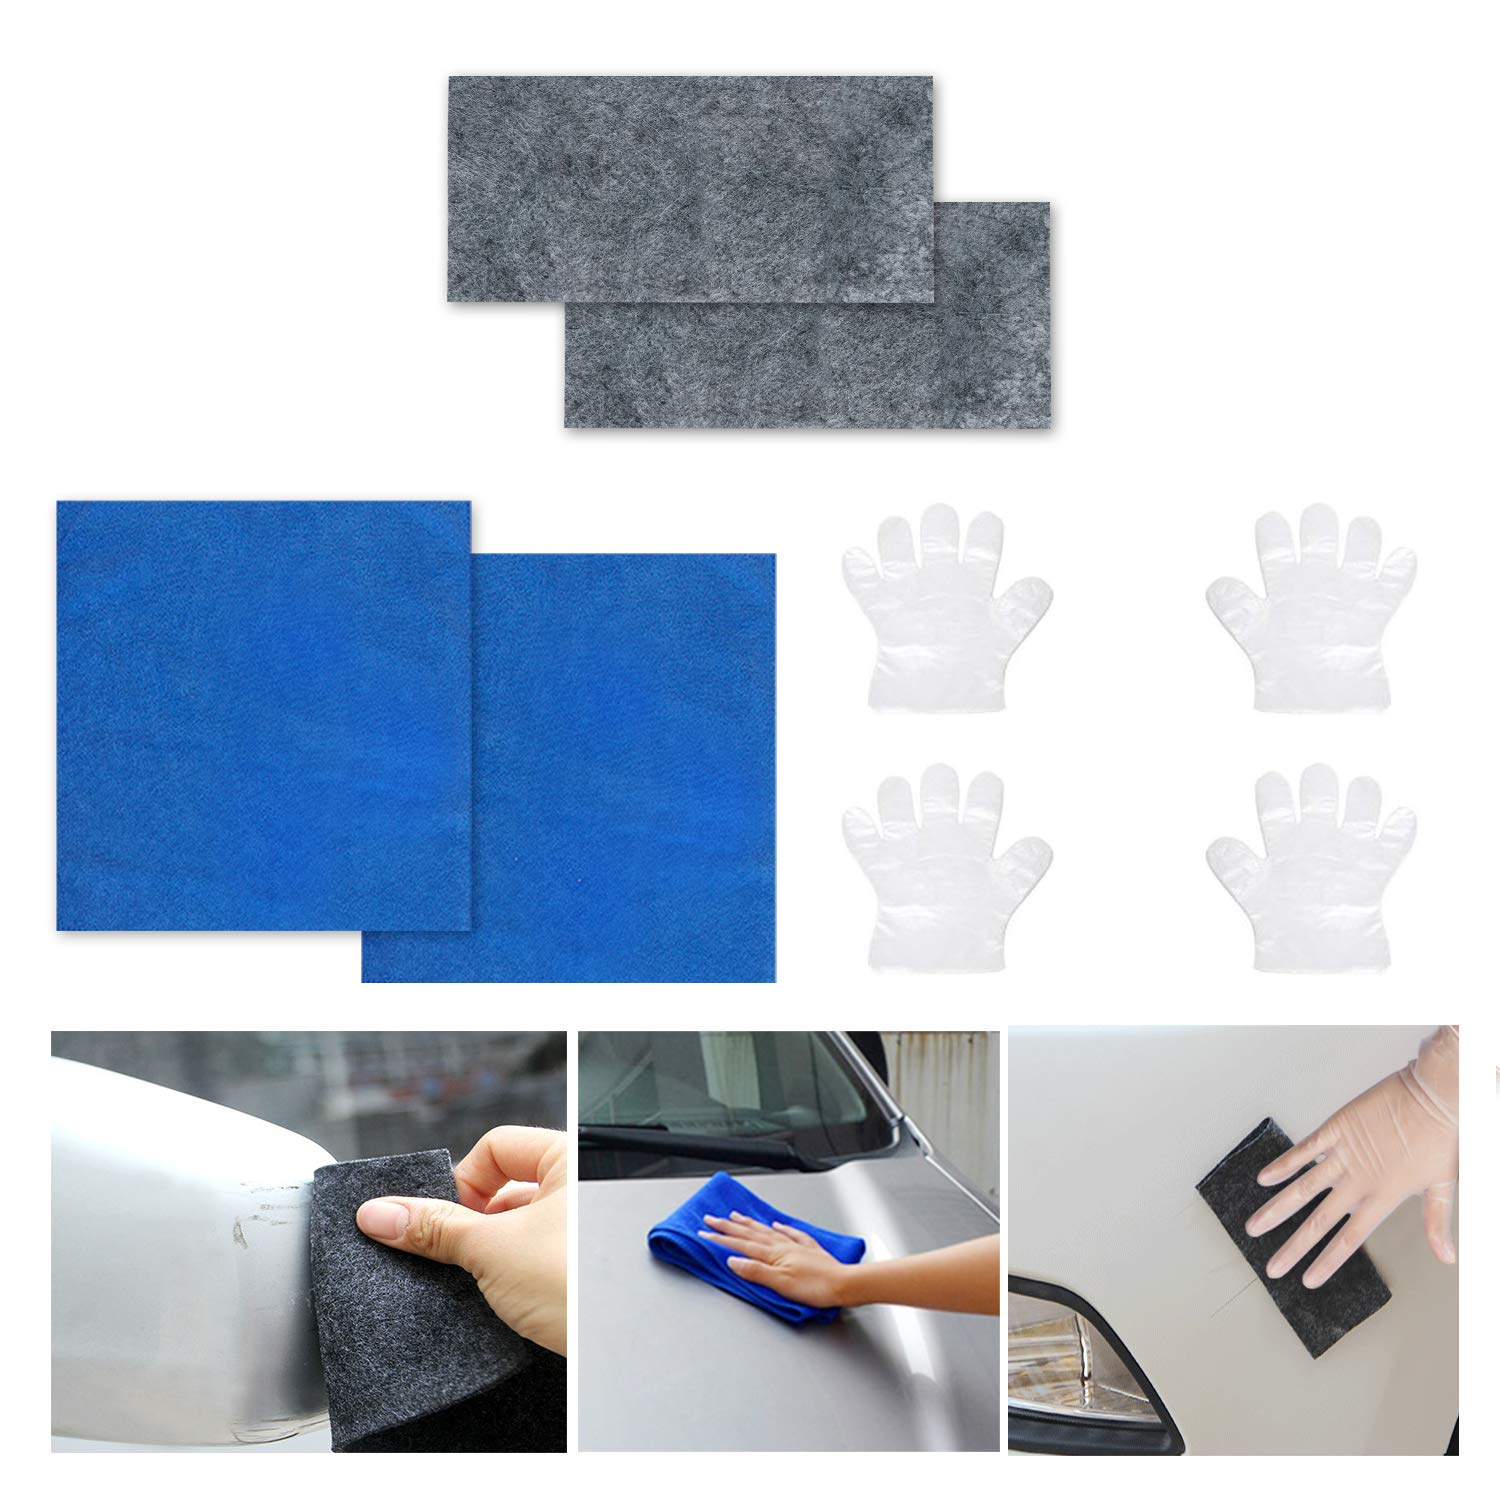 Tonsiki Multipurpose Car Scratch Remover Cloth Kit, Including 2PCS Car Scratch Remover Cloth, 2PCS Car Clean Towel and 2 Pair of Gloves for Repairing Car Scratches and Light Paint Scratches Remover